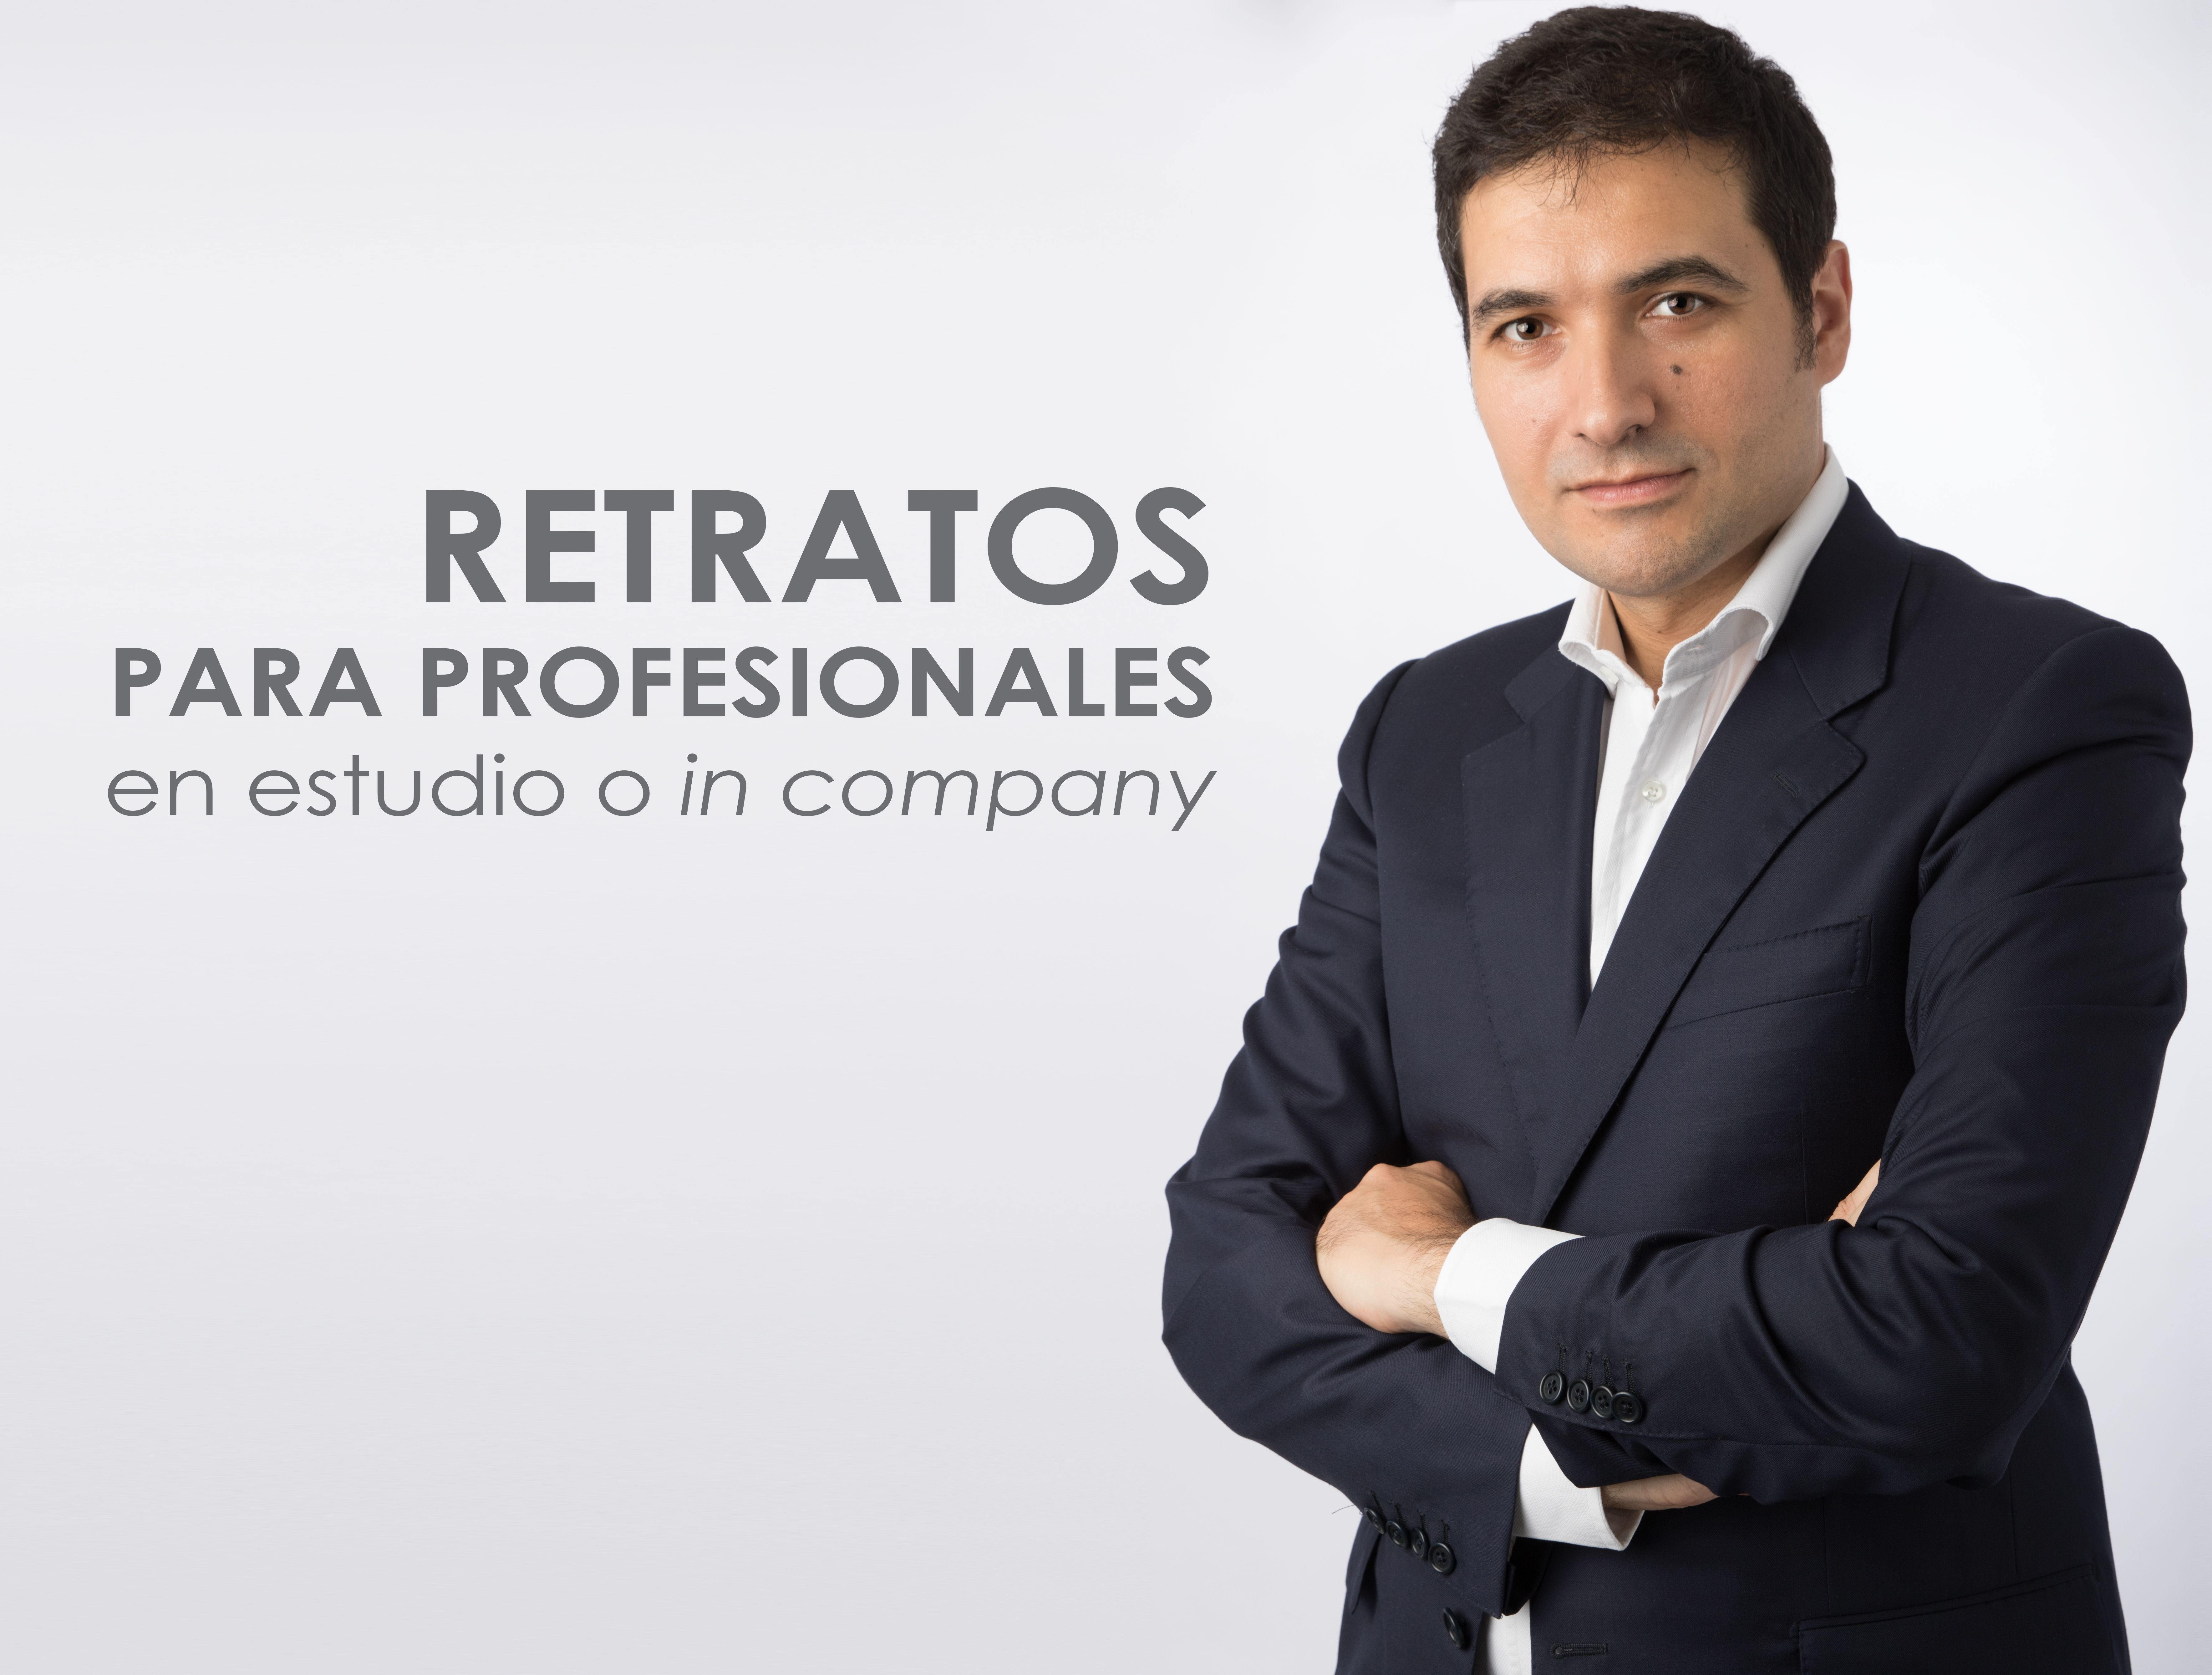 Pictureo servicios-retrato-para-profesionales-en-estudio